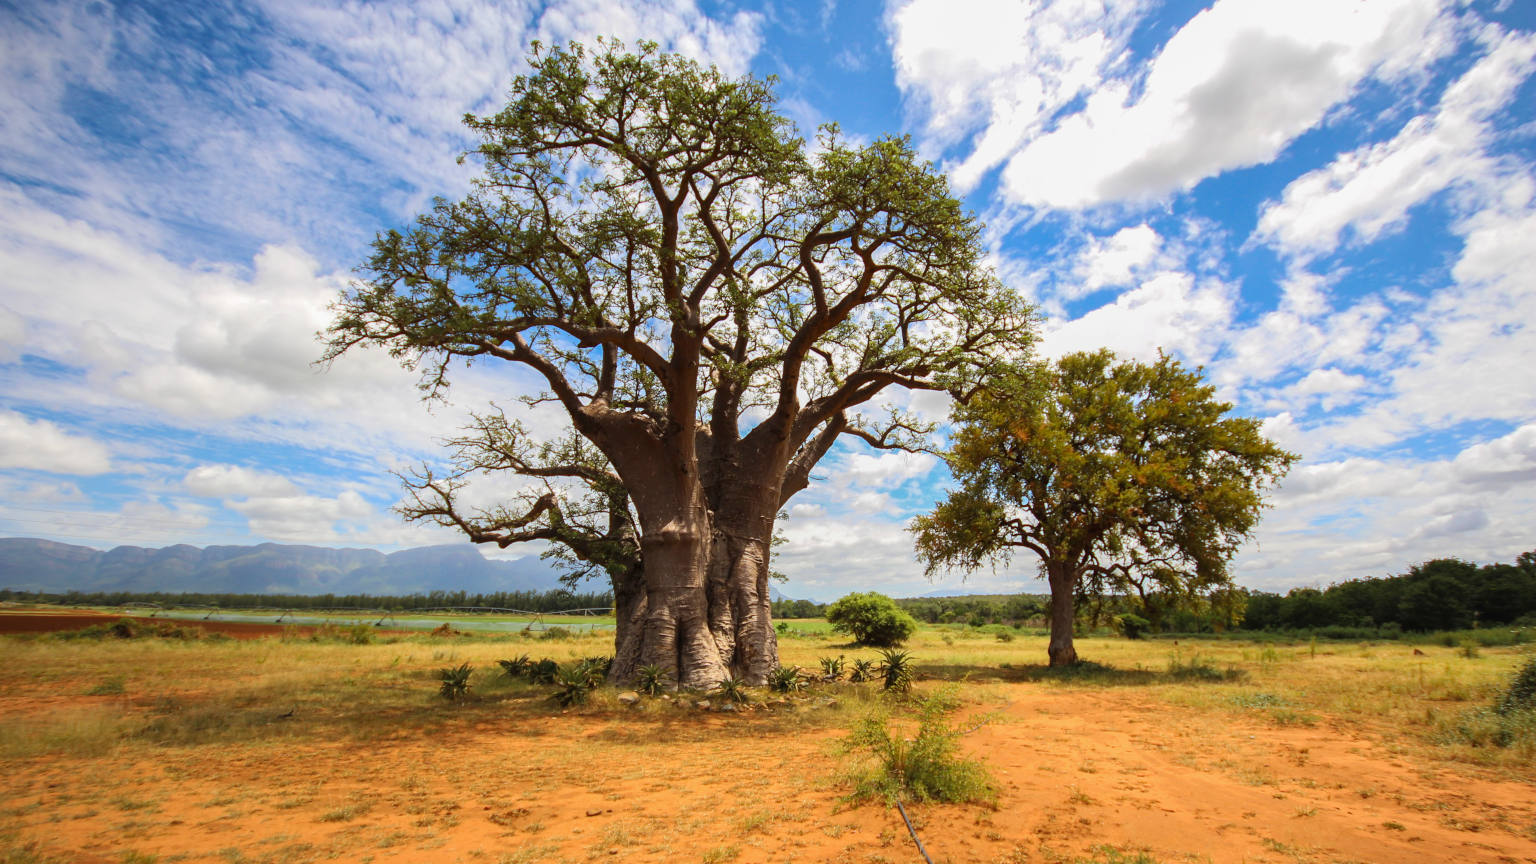 South-Africa-Kruger-National-Park-Baobab-Tree-cropped